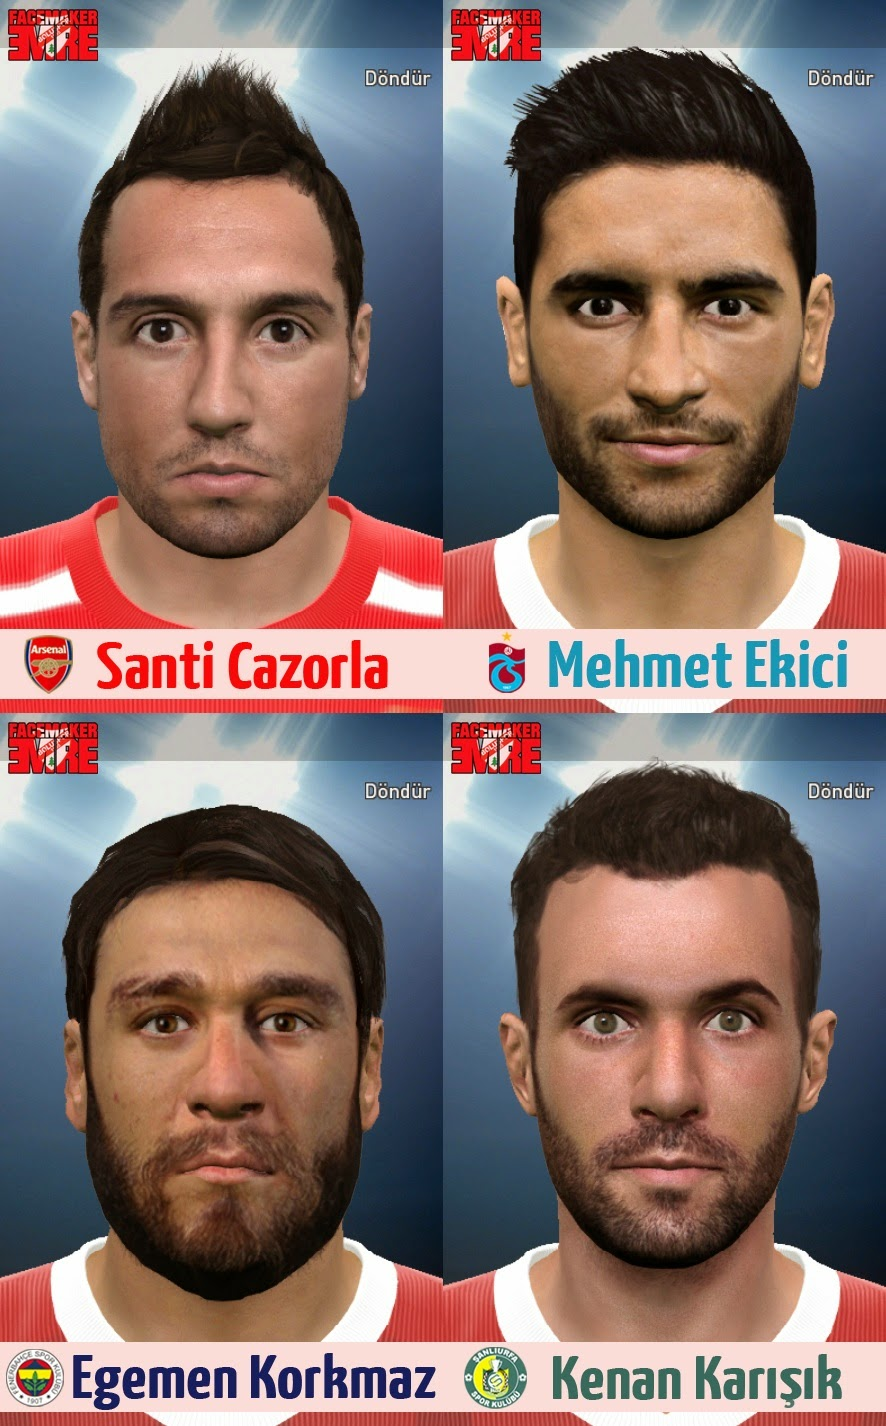 PES 2015 Facepack 2 by emre0796